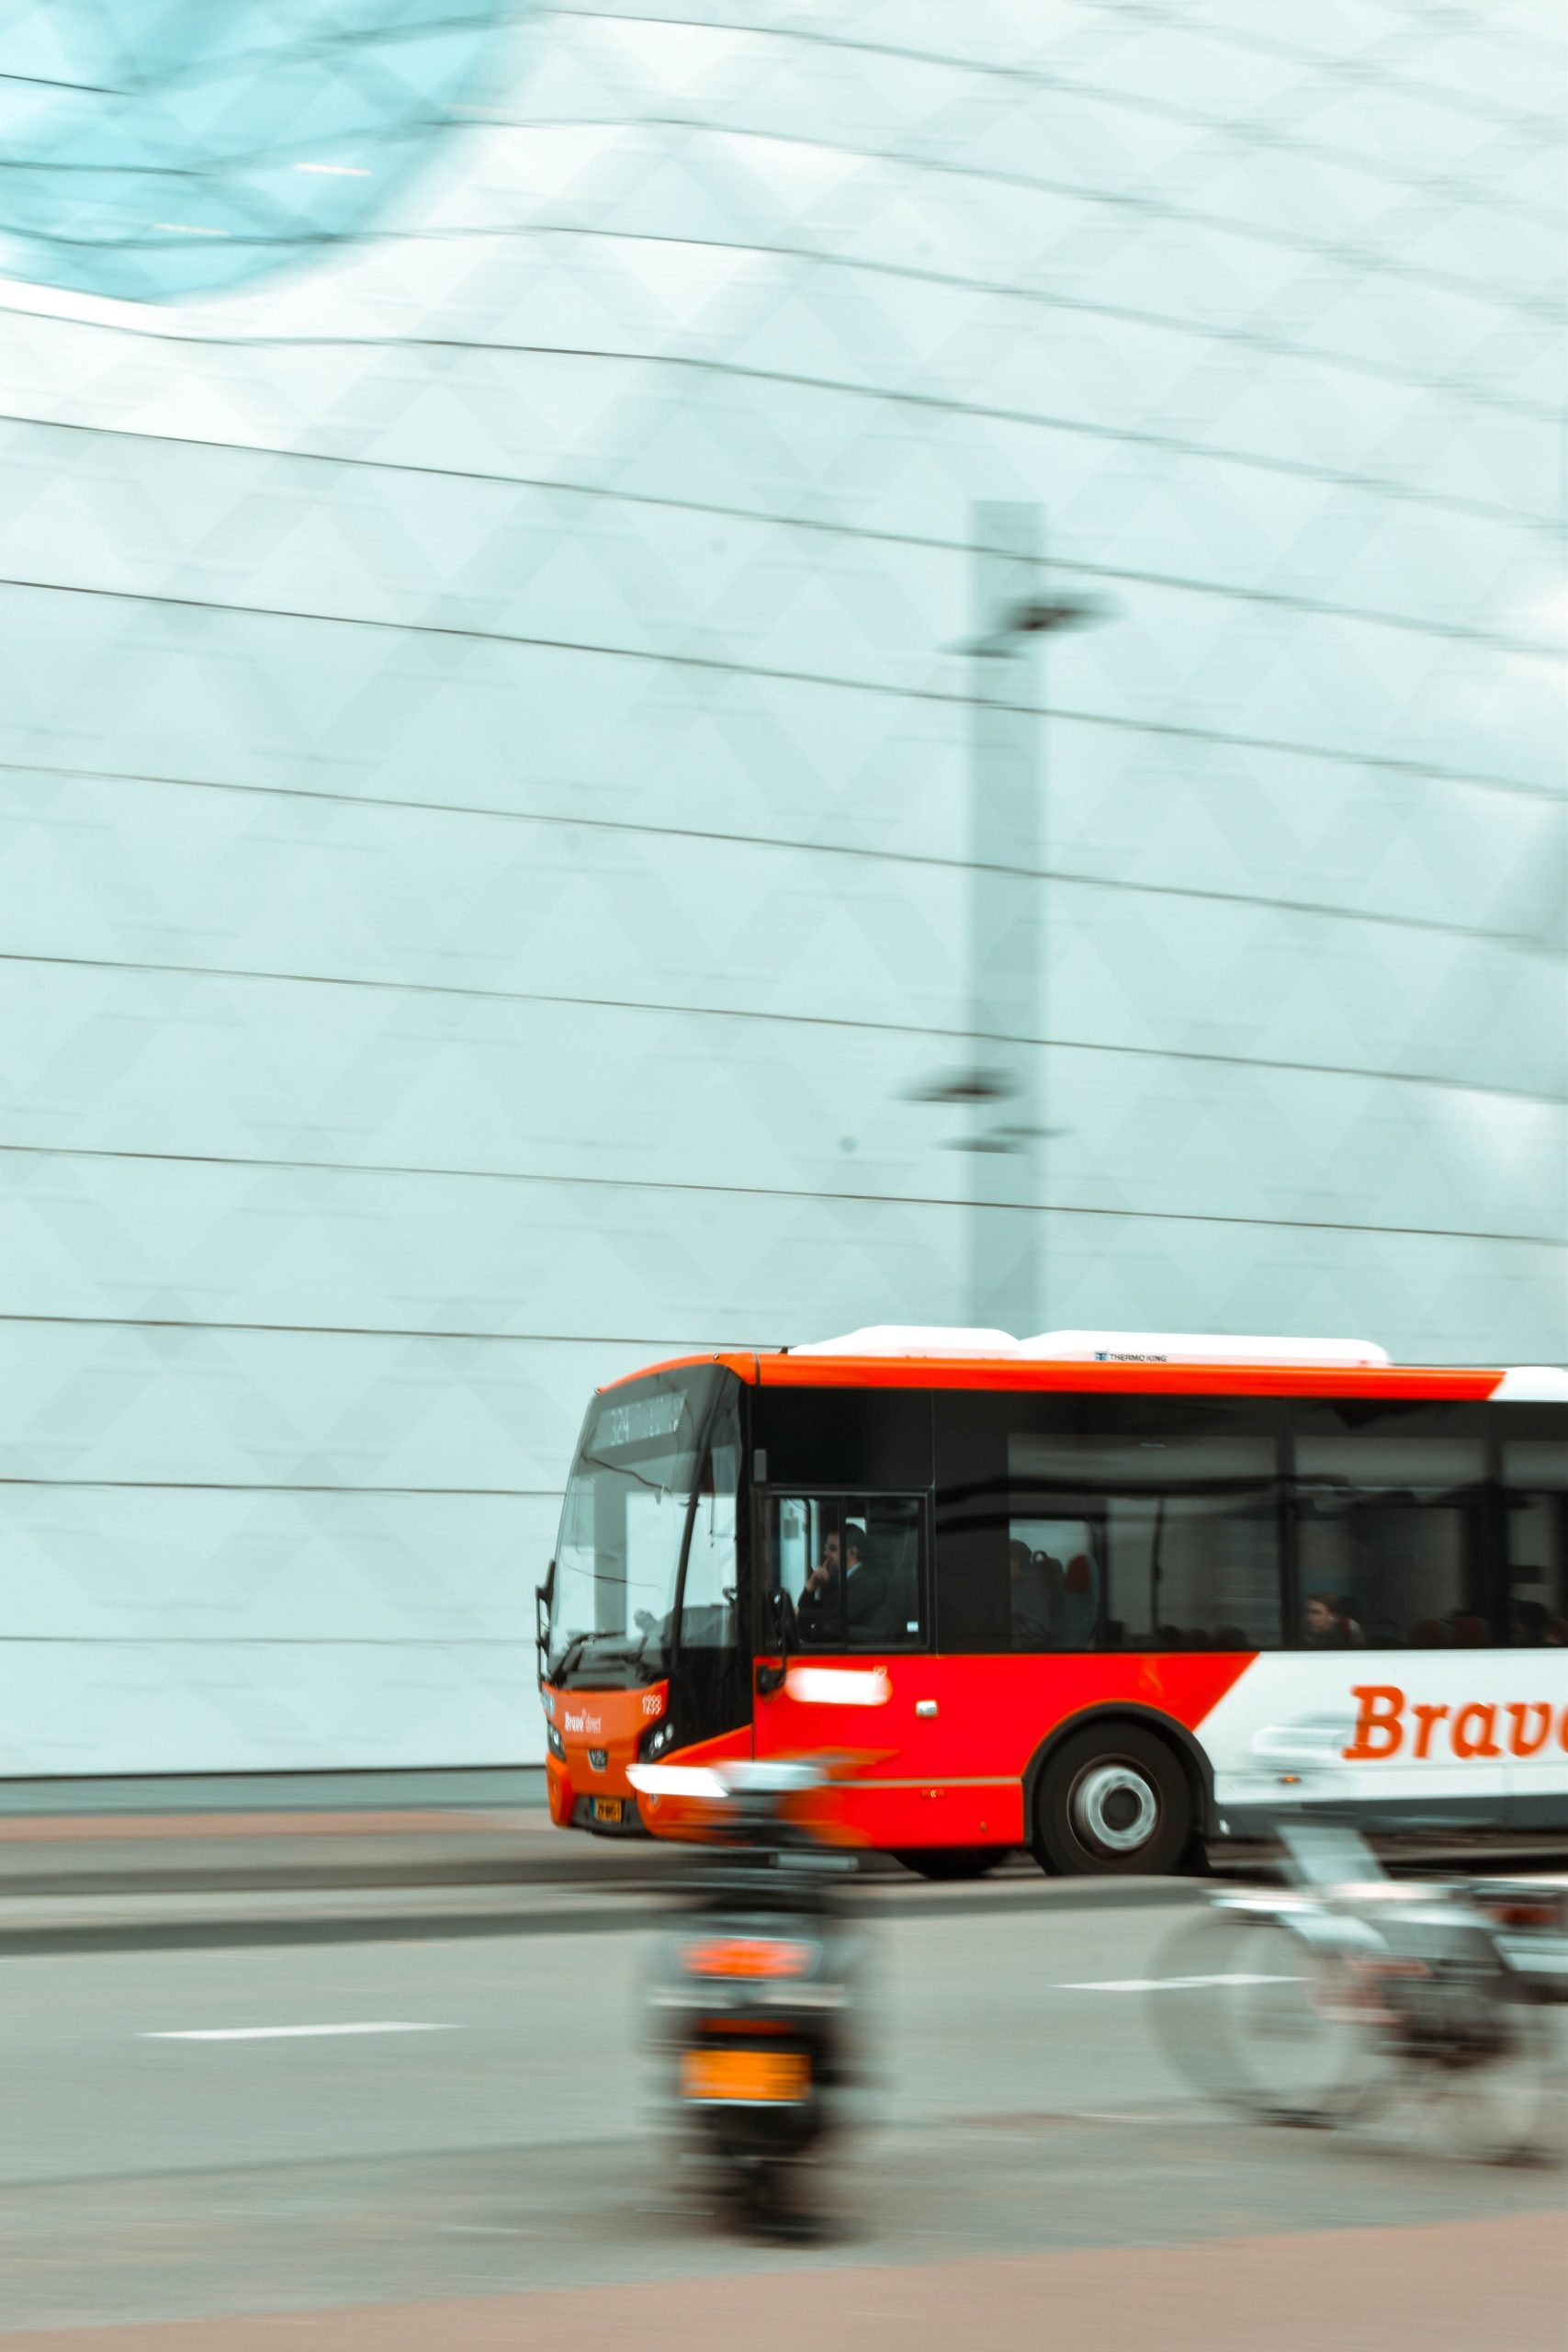 selective-focus-photography-of-red-and-white-bus-2085503